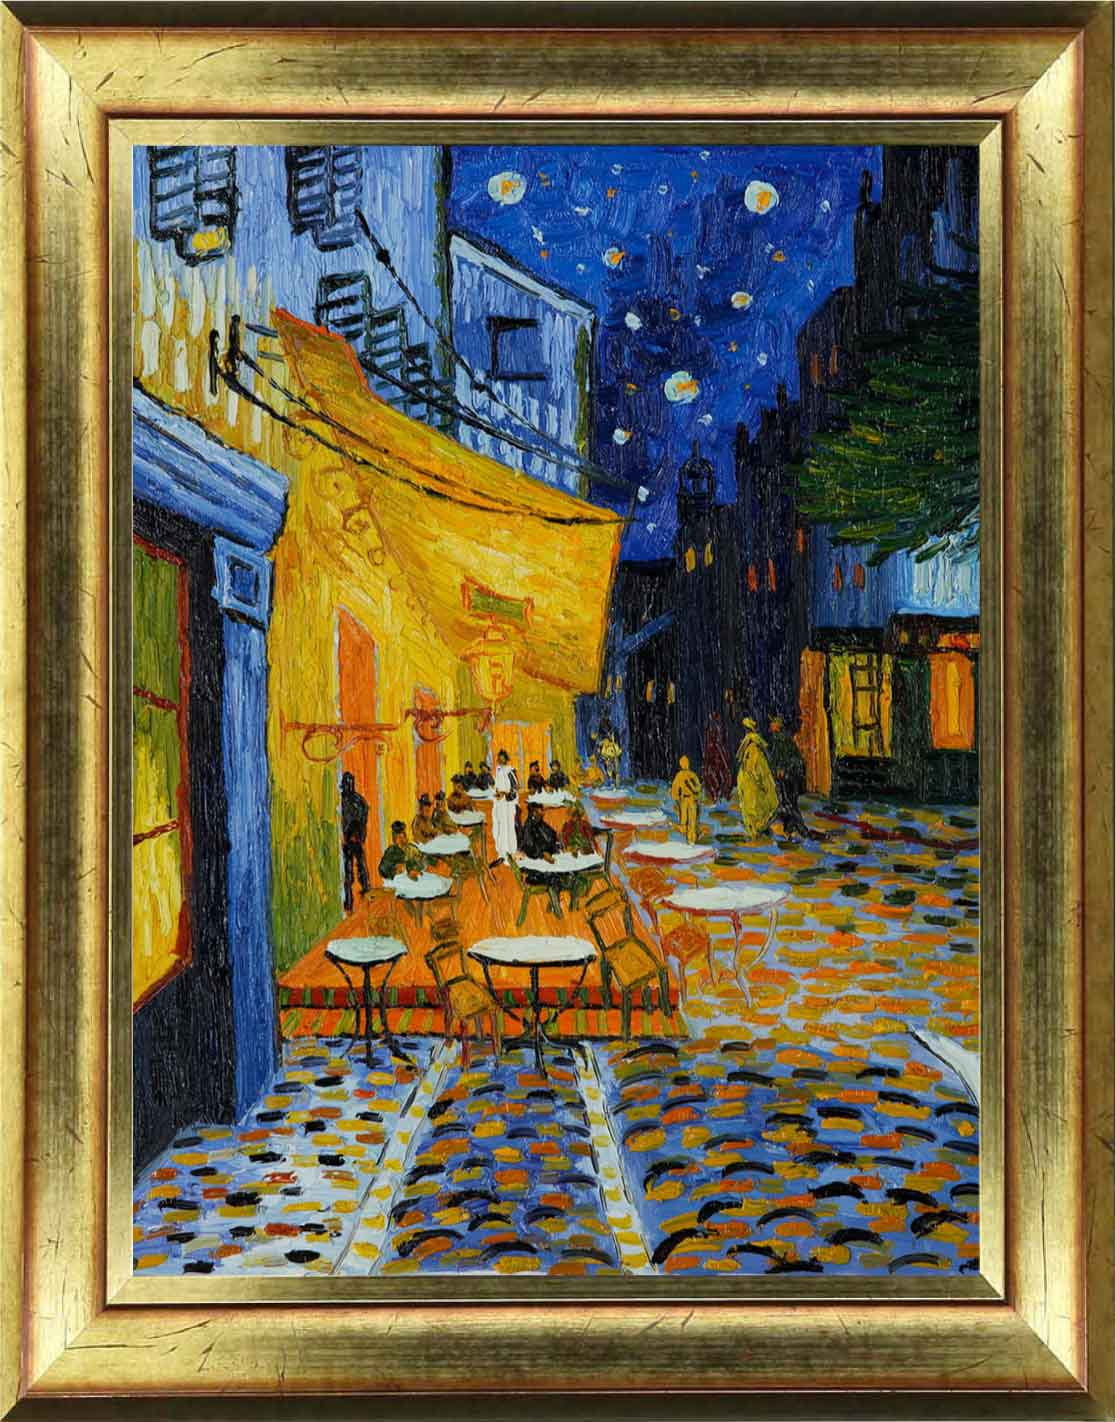 Wall Decal Painting Van Gogh Cafe Terrace At Night Arles Wall Decal Wall Decal Cities And Travels Countries And Travels Ambiance Sticker